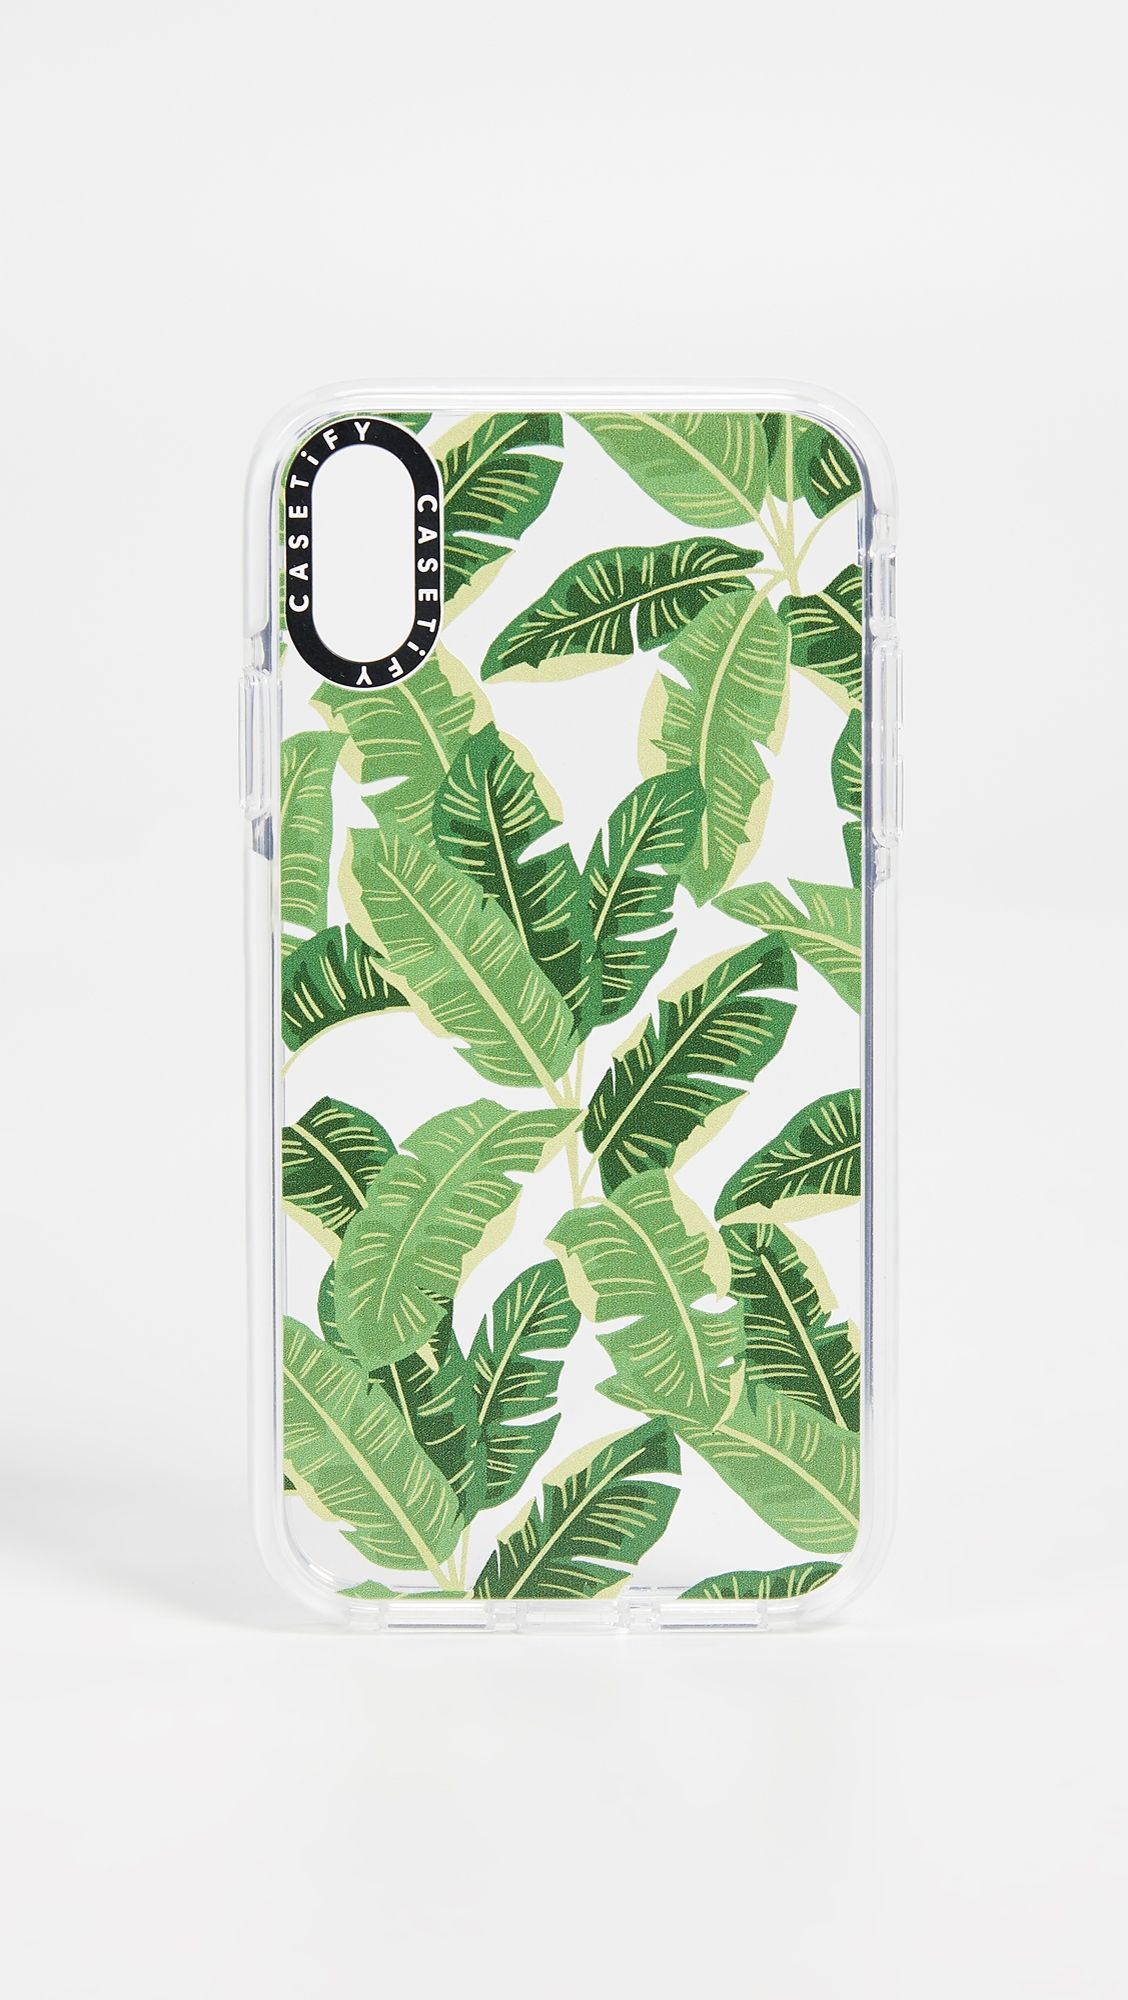 Jungle Leaves iPhone XR Case in 2020 Iphone phone cases